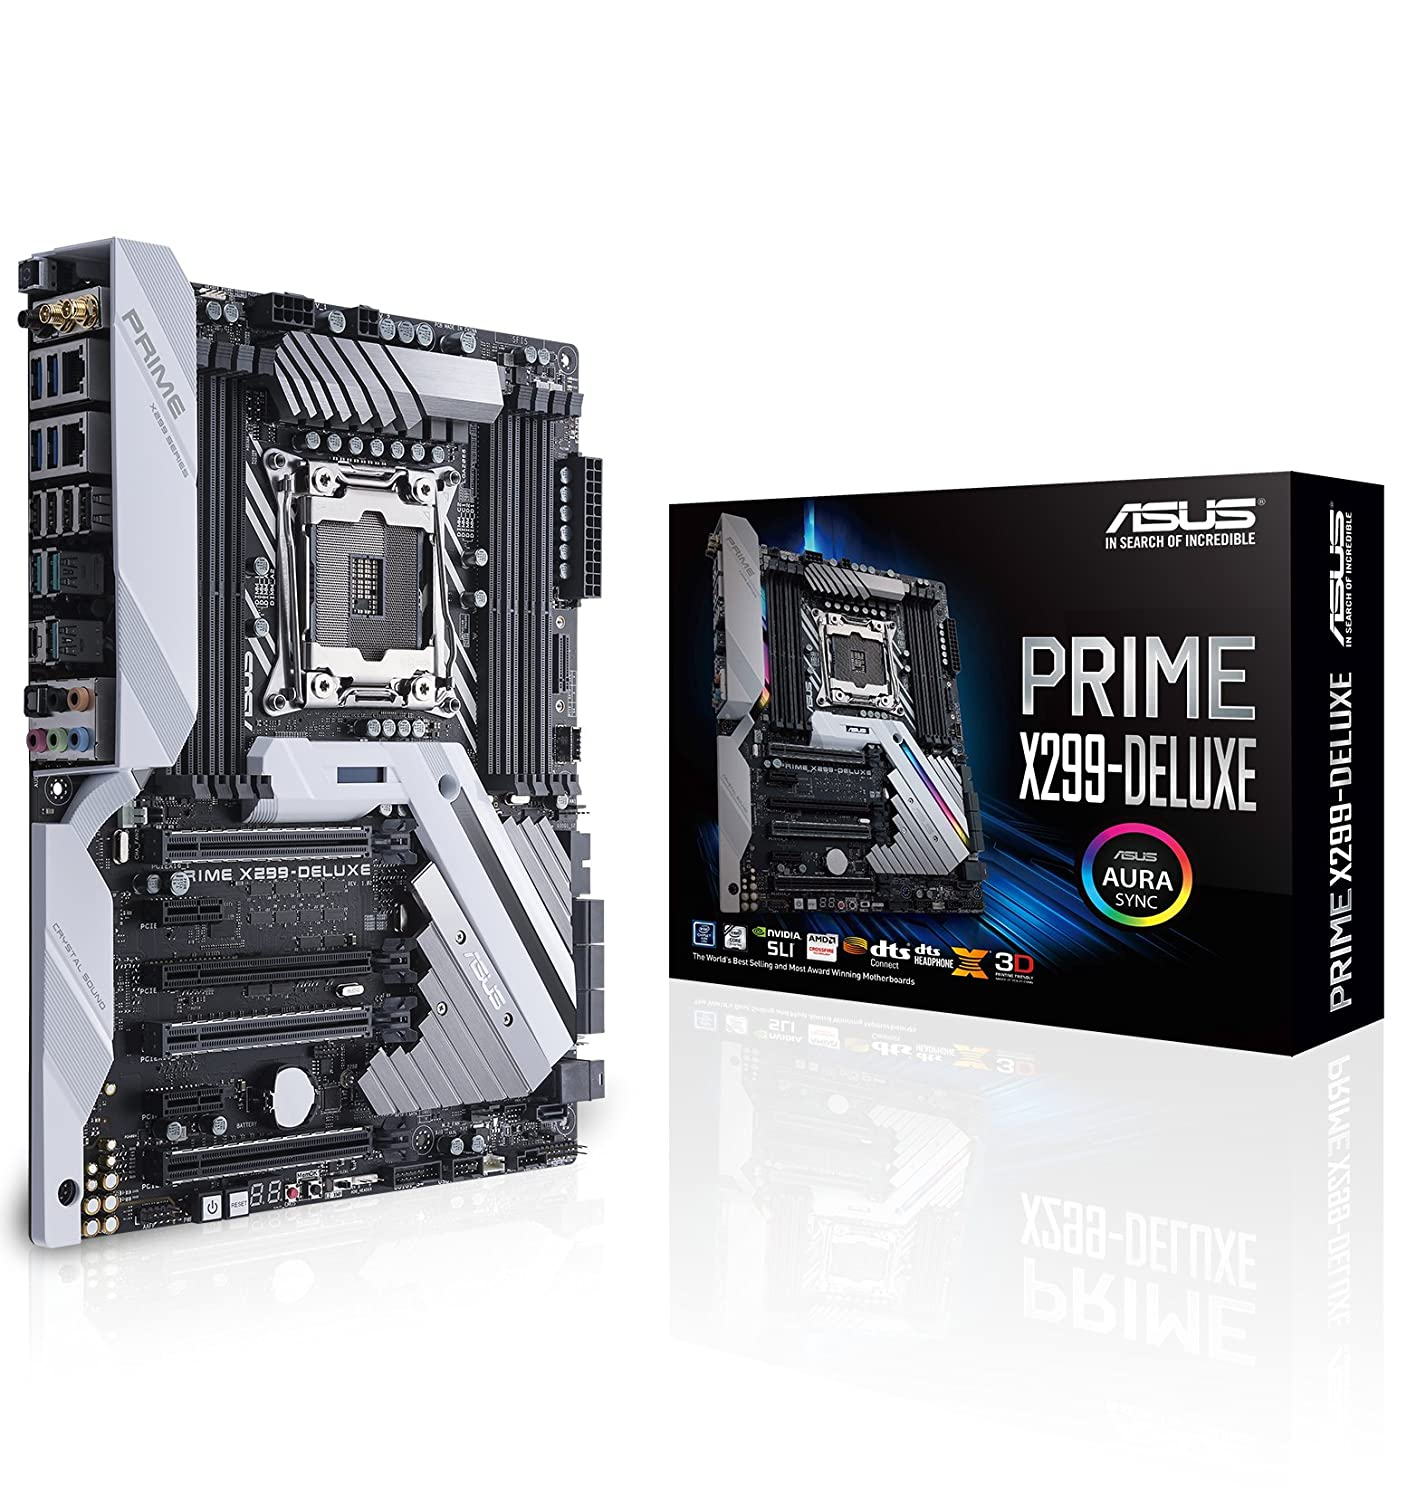 ASUS Prime X299-DELUXE LGA2066 DDR4 M.2 U.2 Thunderbolt 3 USB 3.1 X299 ATX Motherboard with Dual Gigabit LAN and 802.11AD WiFi for Intel Core X-Series Processors